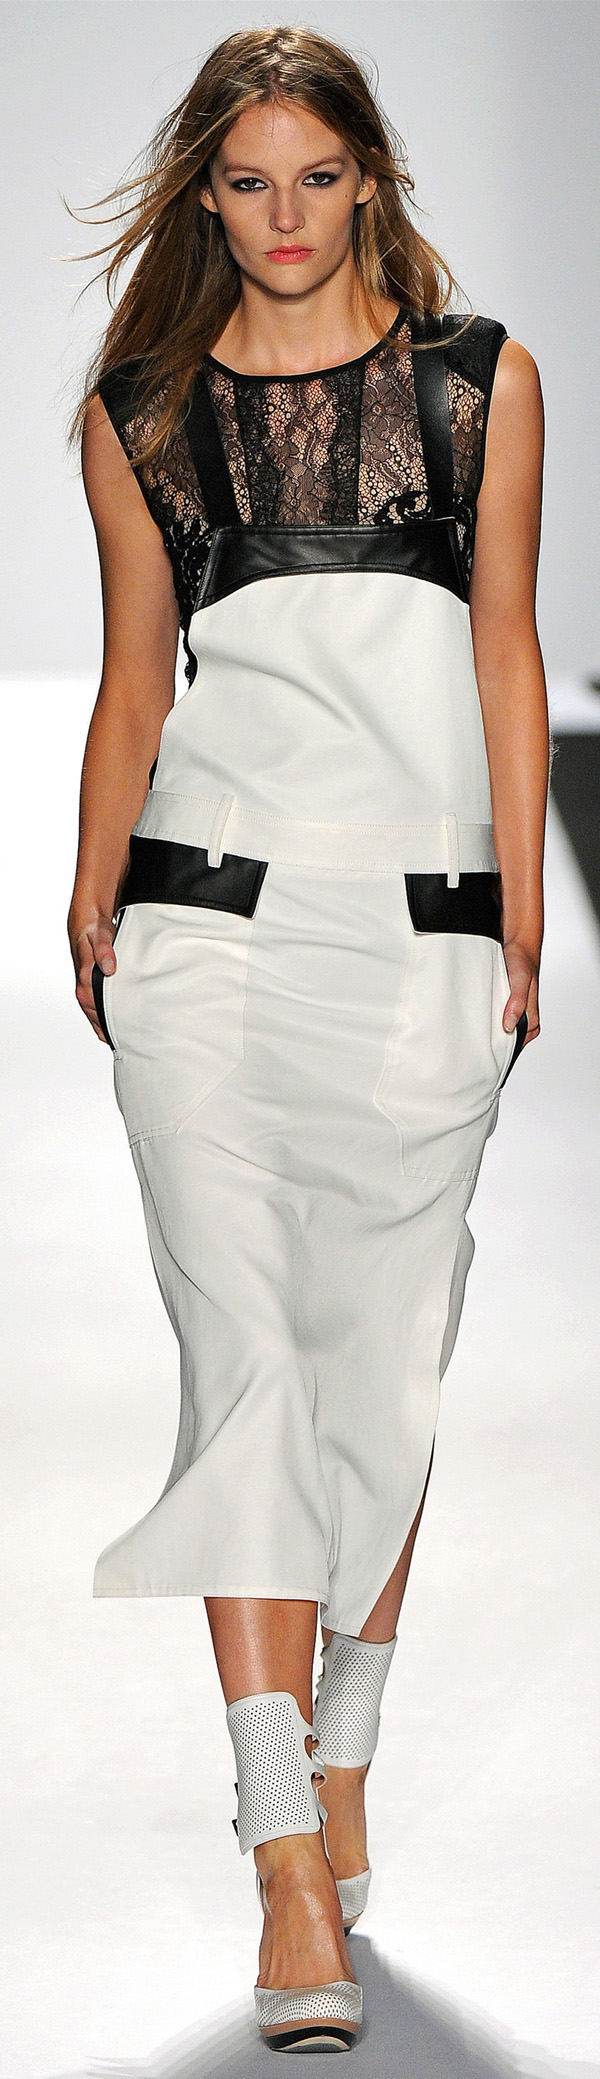 BCBG Max Azria Spring Summer 2013 RTW Collection